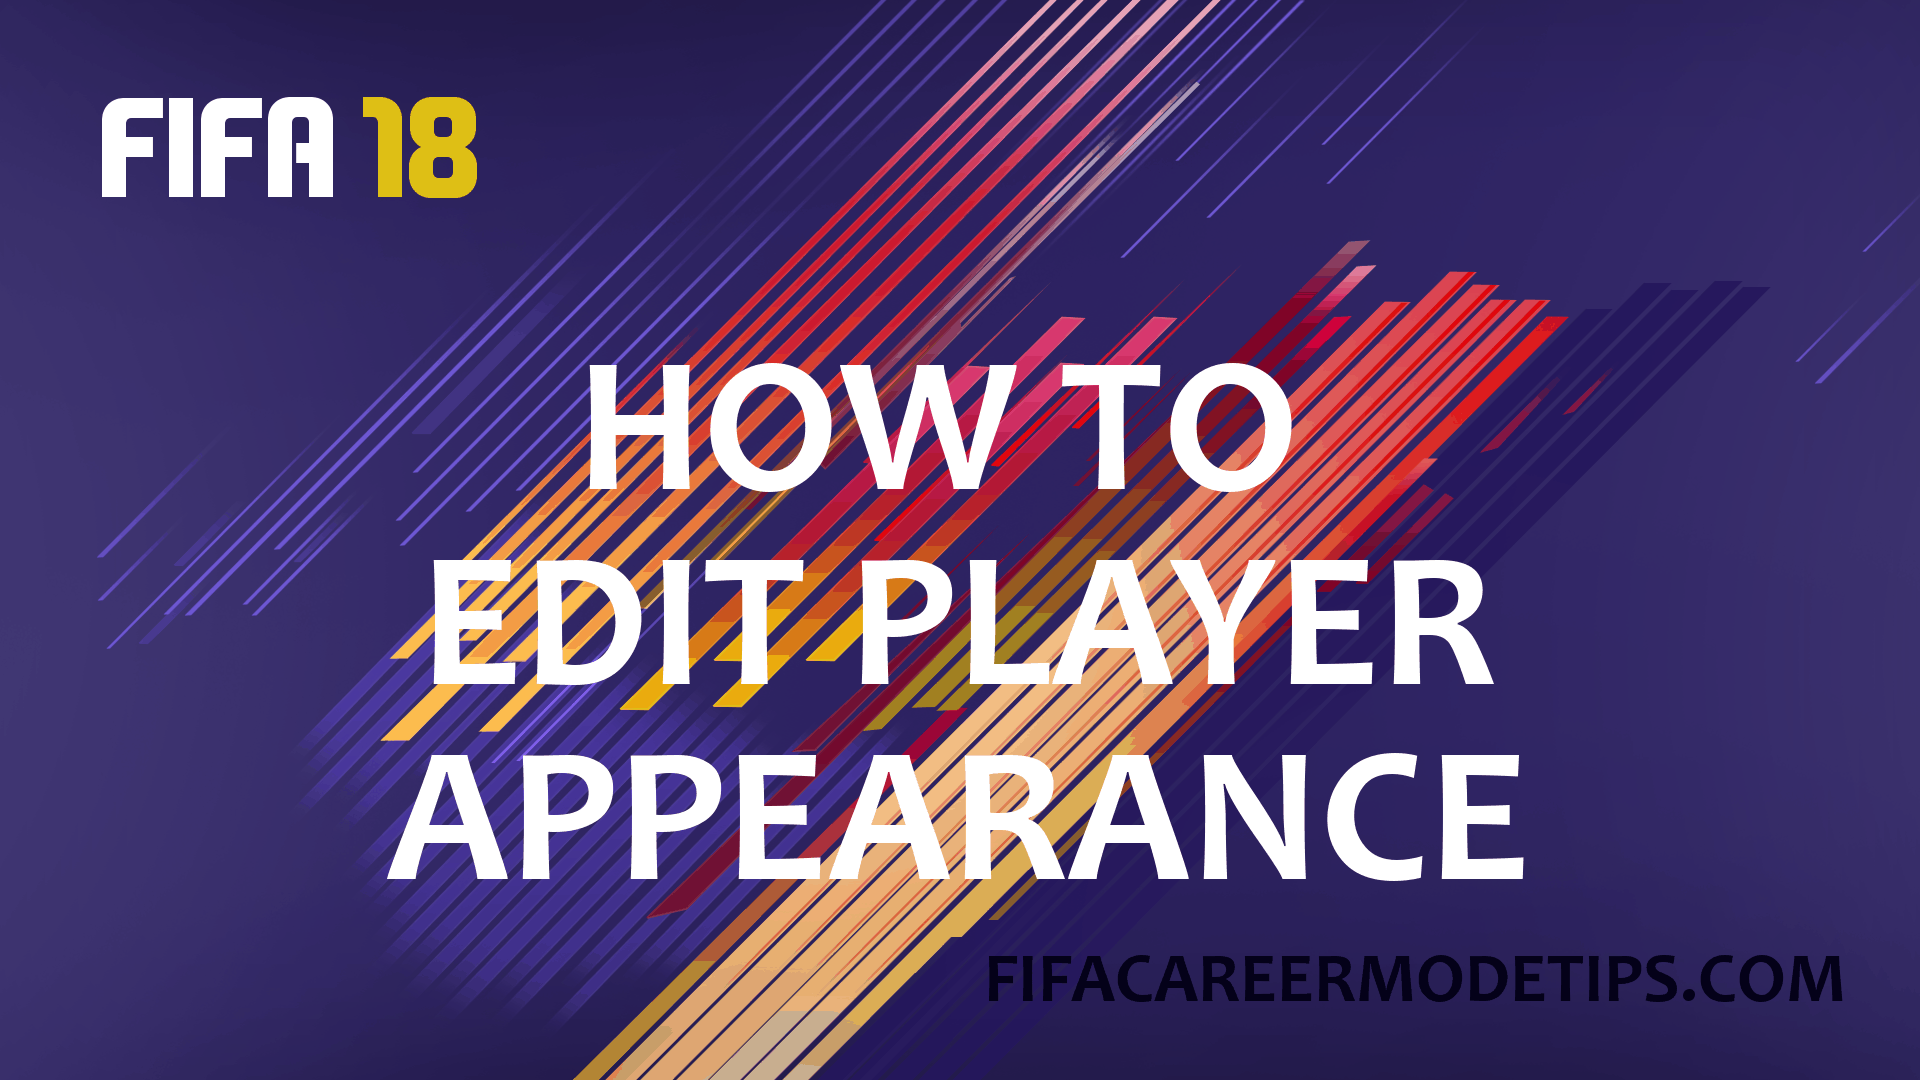 How to Edit Player Appearance